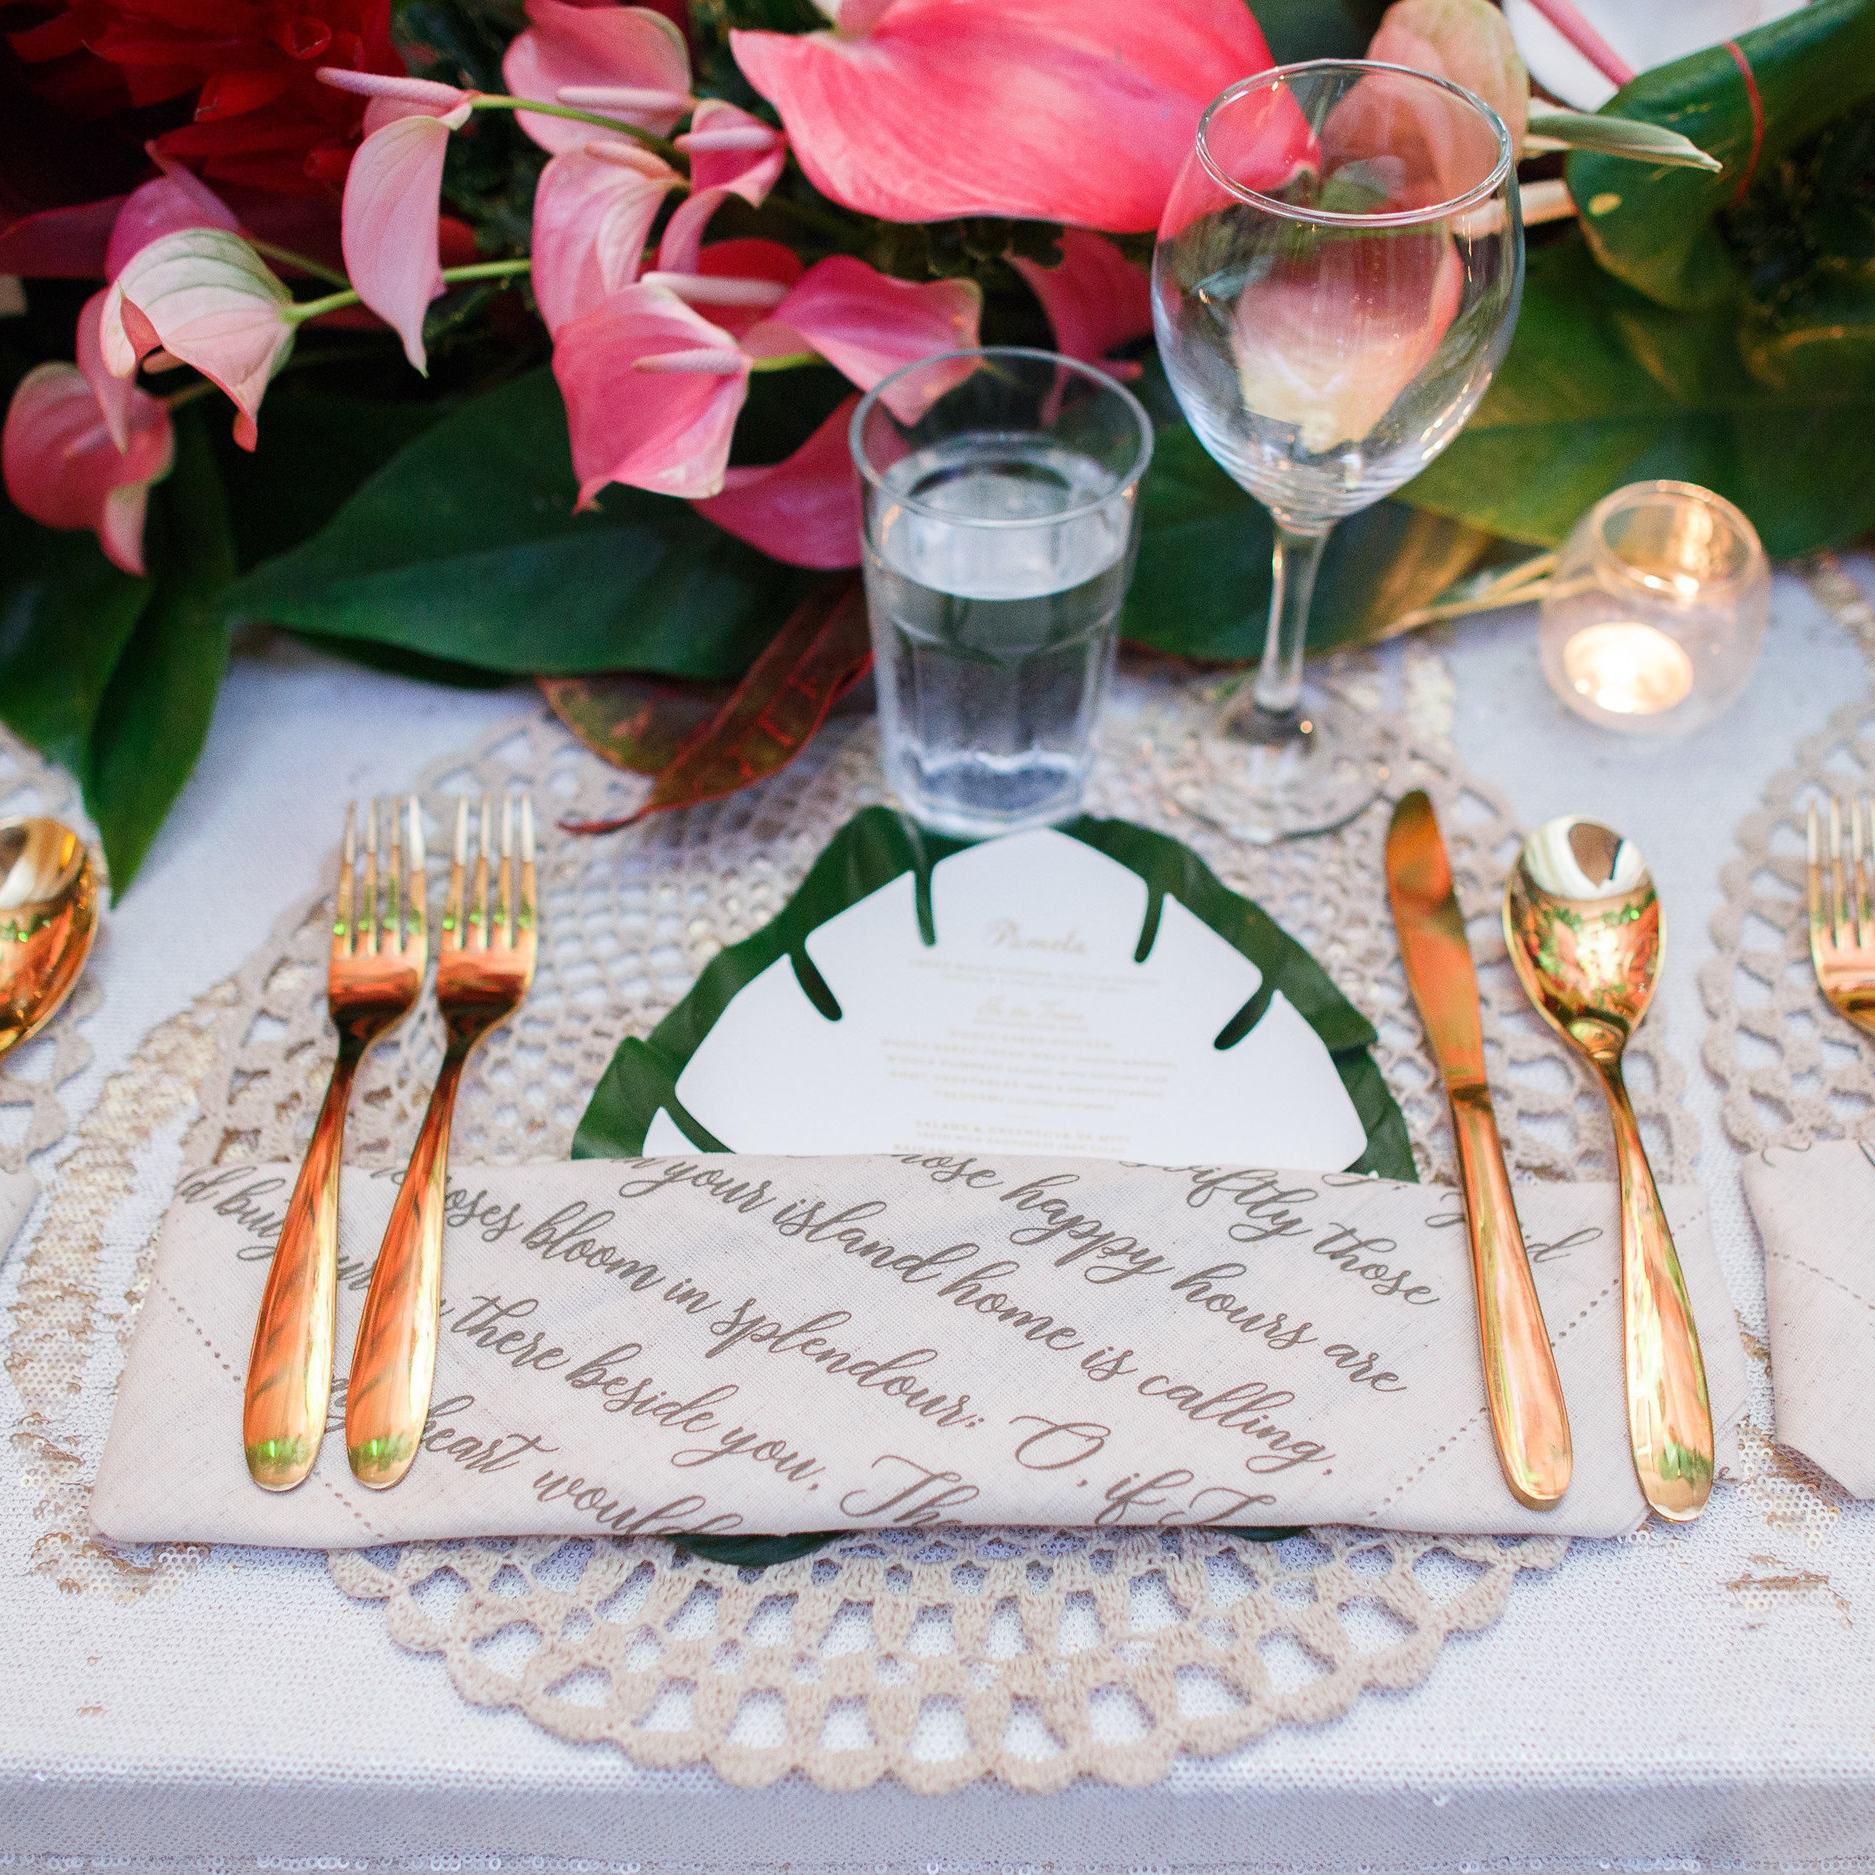 Fiji_destination_wedding_centrepiece_fresh_flowers_charger_plate_gold_cutlery_tropical_luxury_linen.jpg